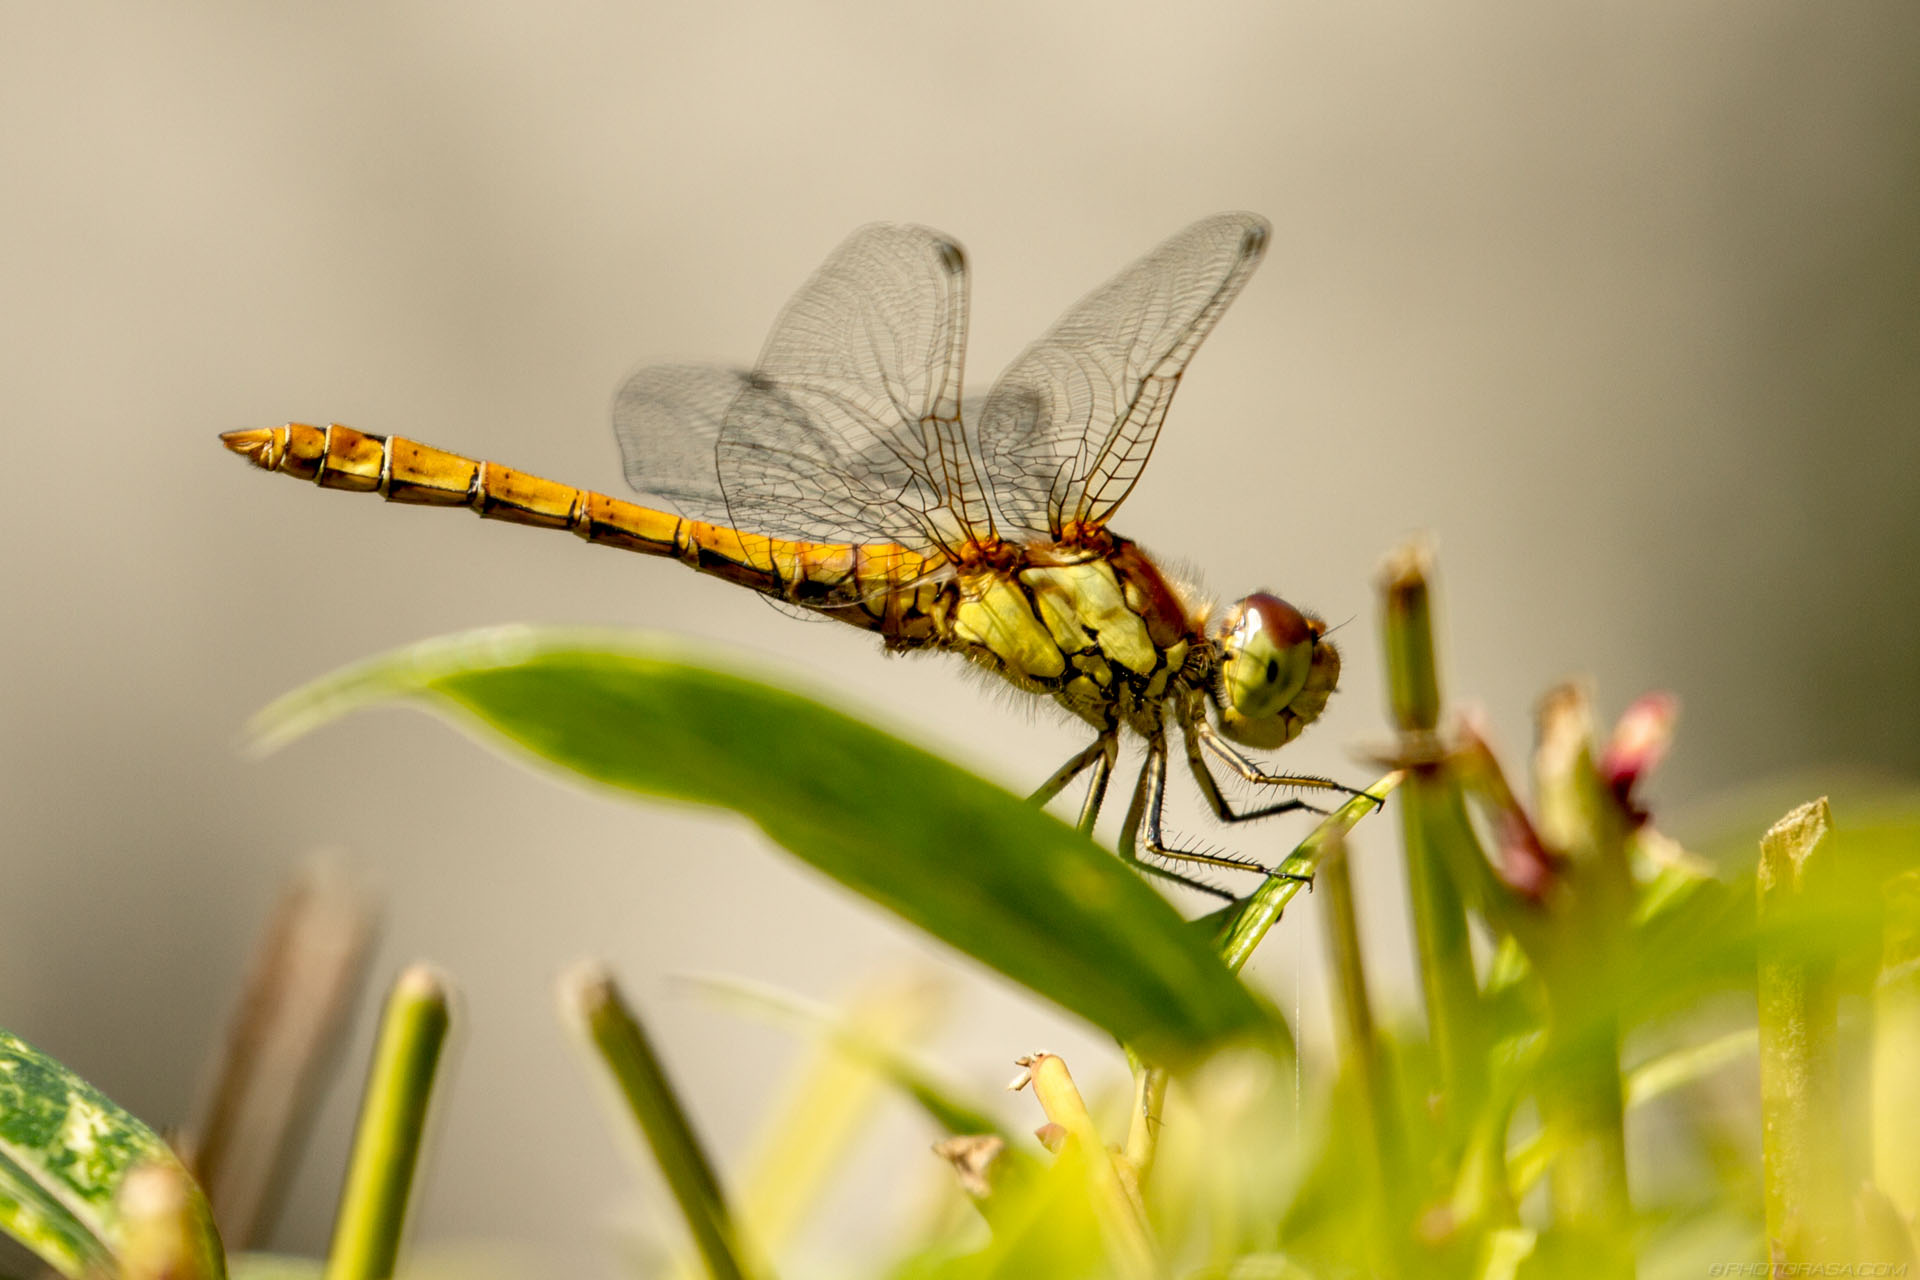 https://photorasa.com/dragonflies/yellow-dragonfly-in-the-undergrowth/